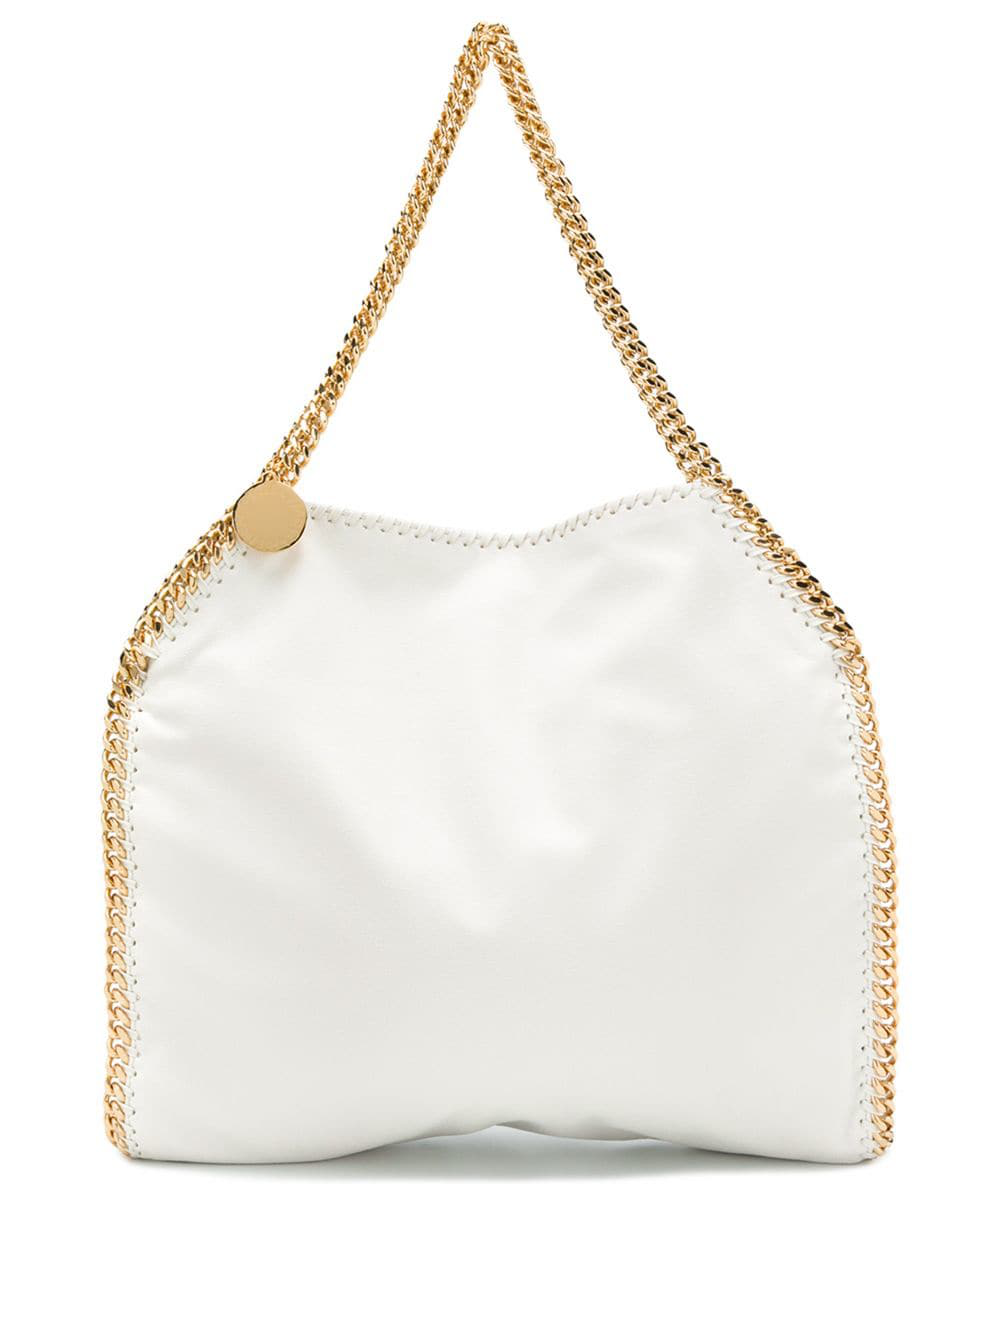 b2caed4350 Stella Mccartney The Falabella Medium Faux Brushed-Leather Shoulder ...